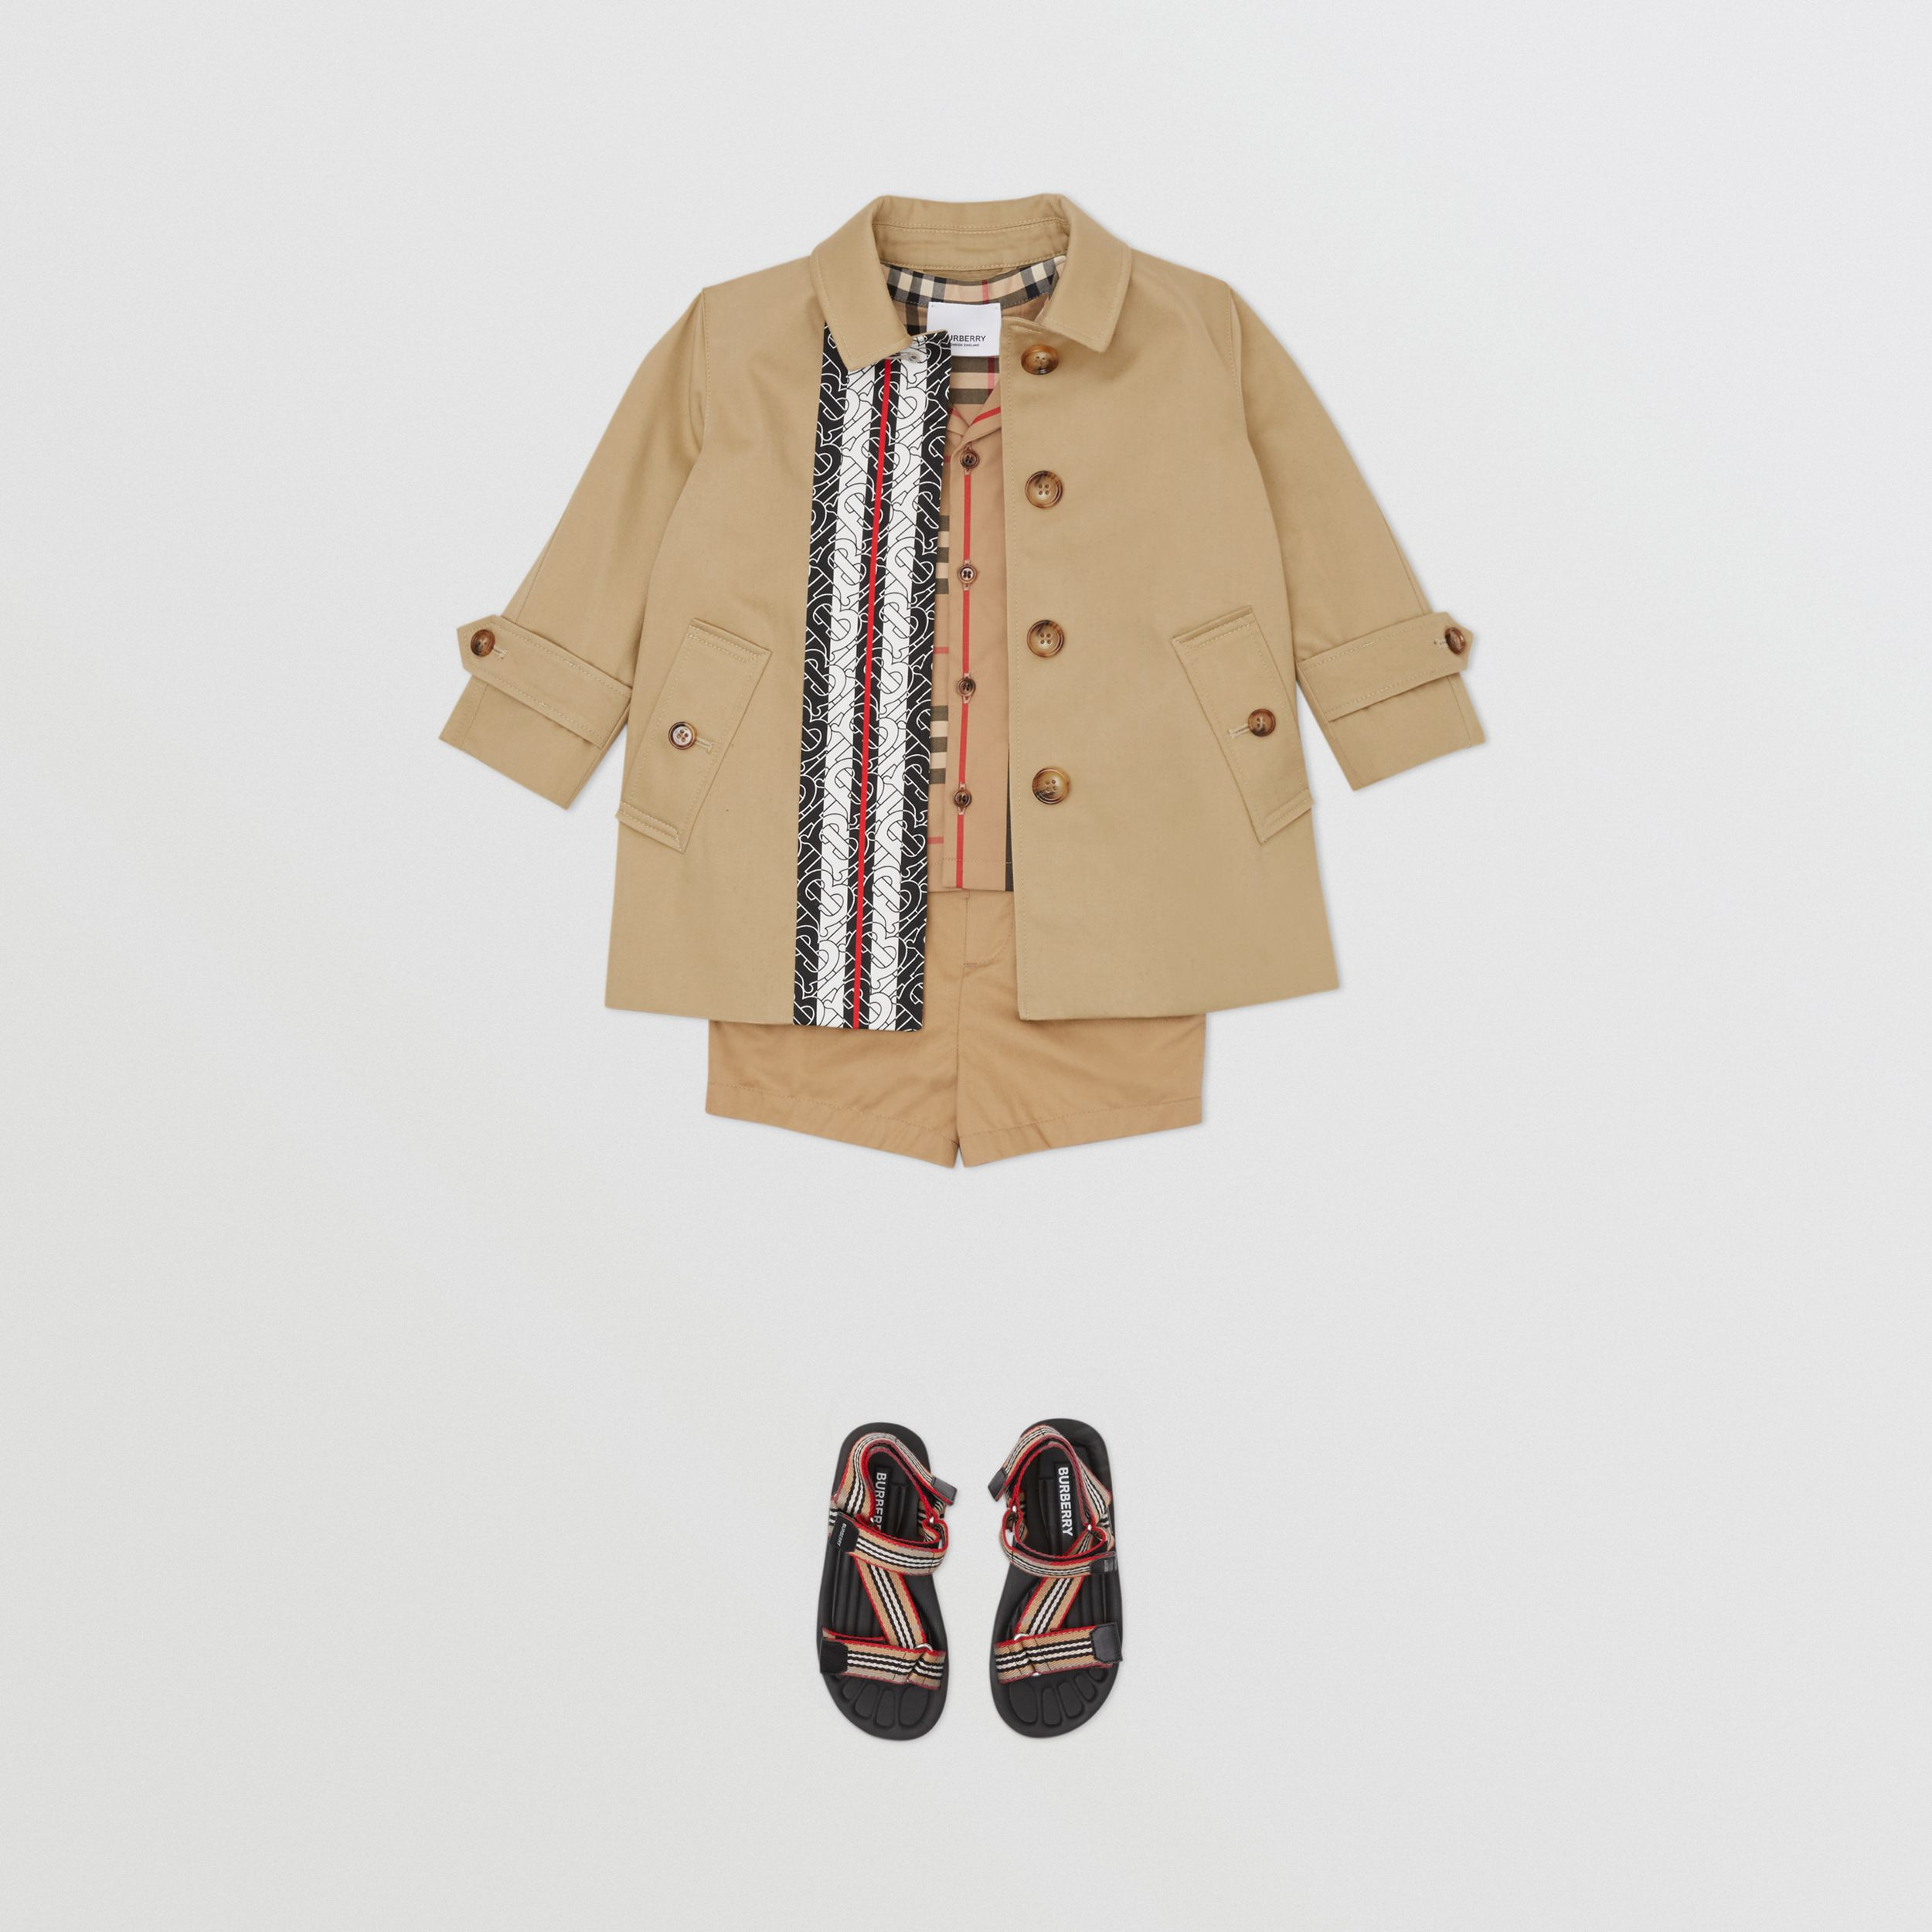 Monogram Stripe Print Cotton Car Coat in Honey - Children | Burberry Canada - 4